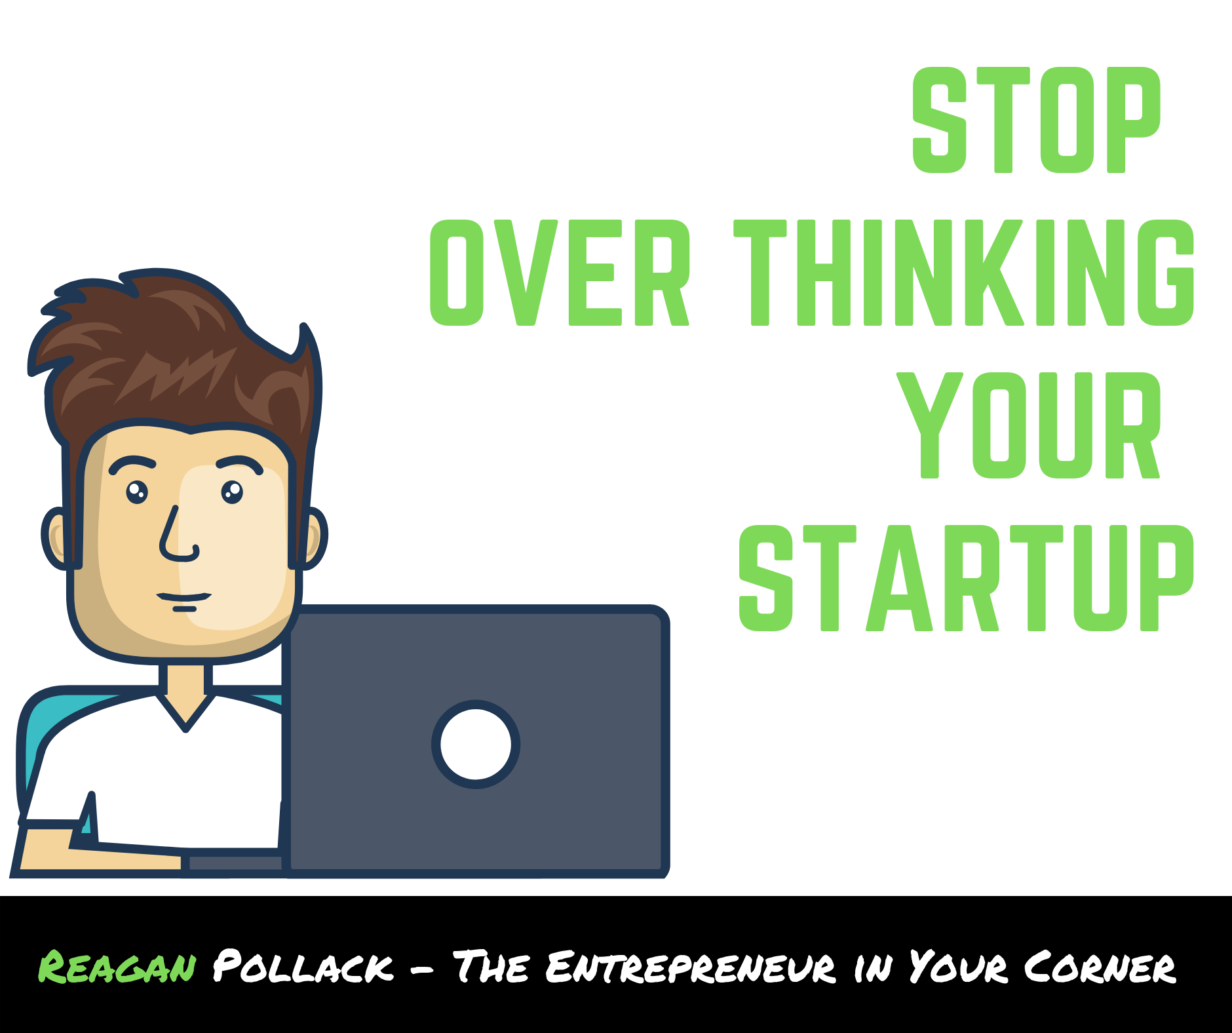 How to stop overthinking your startup - Reagan Pollack - Entrepreneur